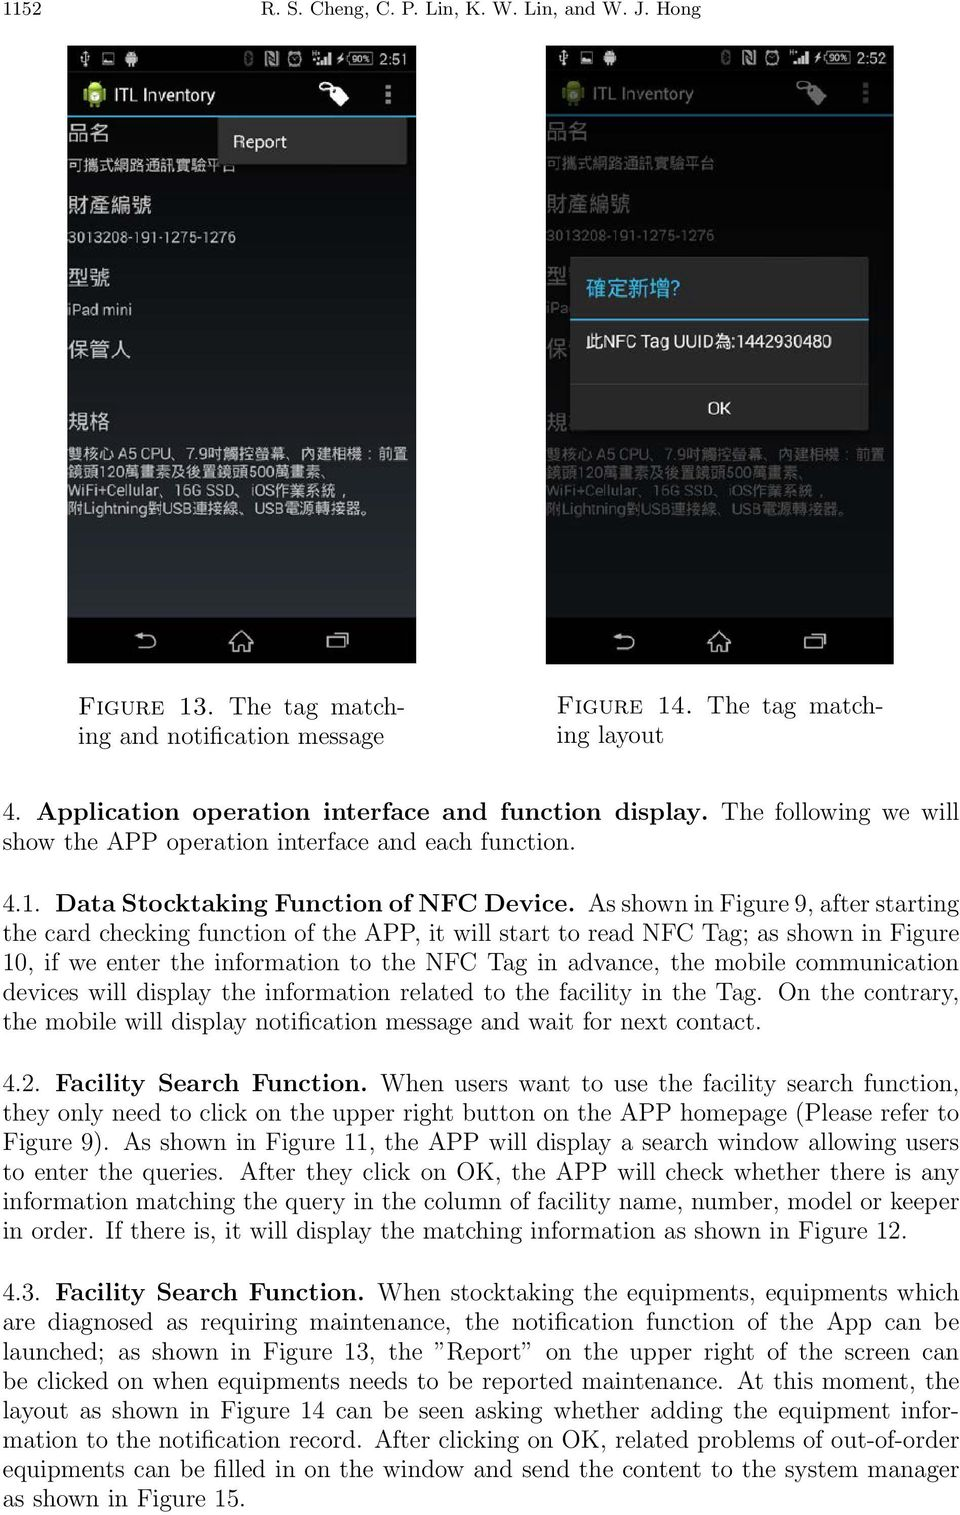 As shown in Figure 9, after starting the card checking function of the APP, it will start to read NFC Tag; as shown in Figure 10, if we enter the information to the NFC Tag in advance, the mobile